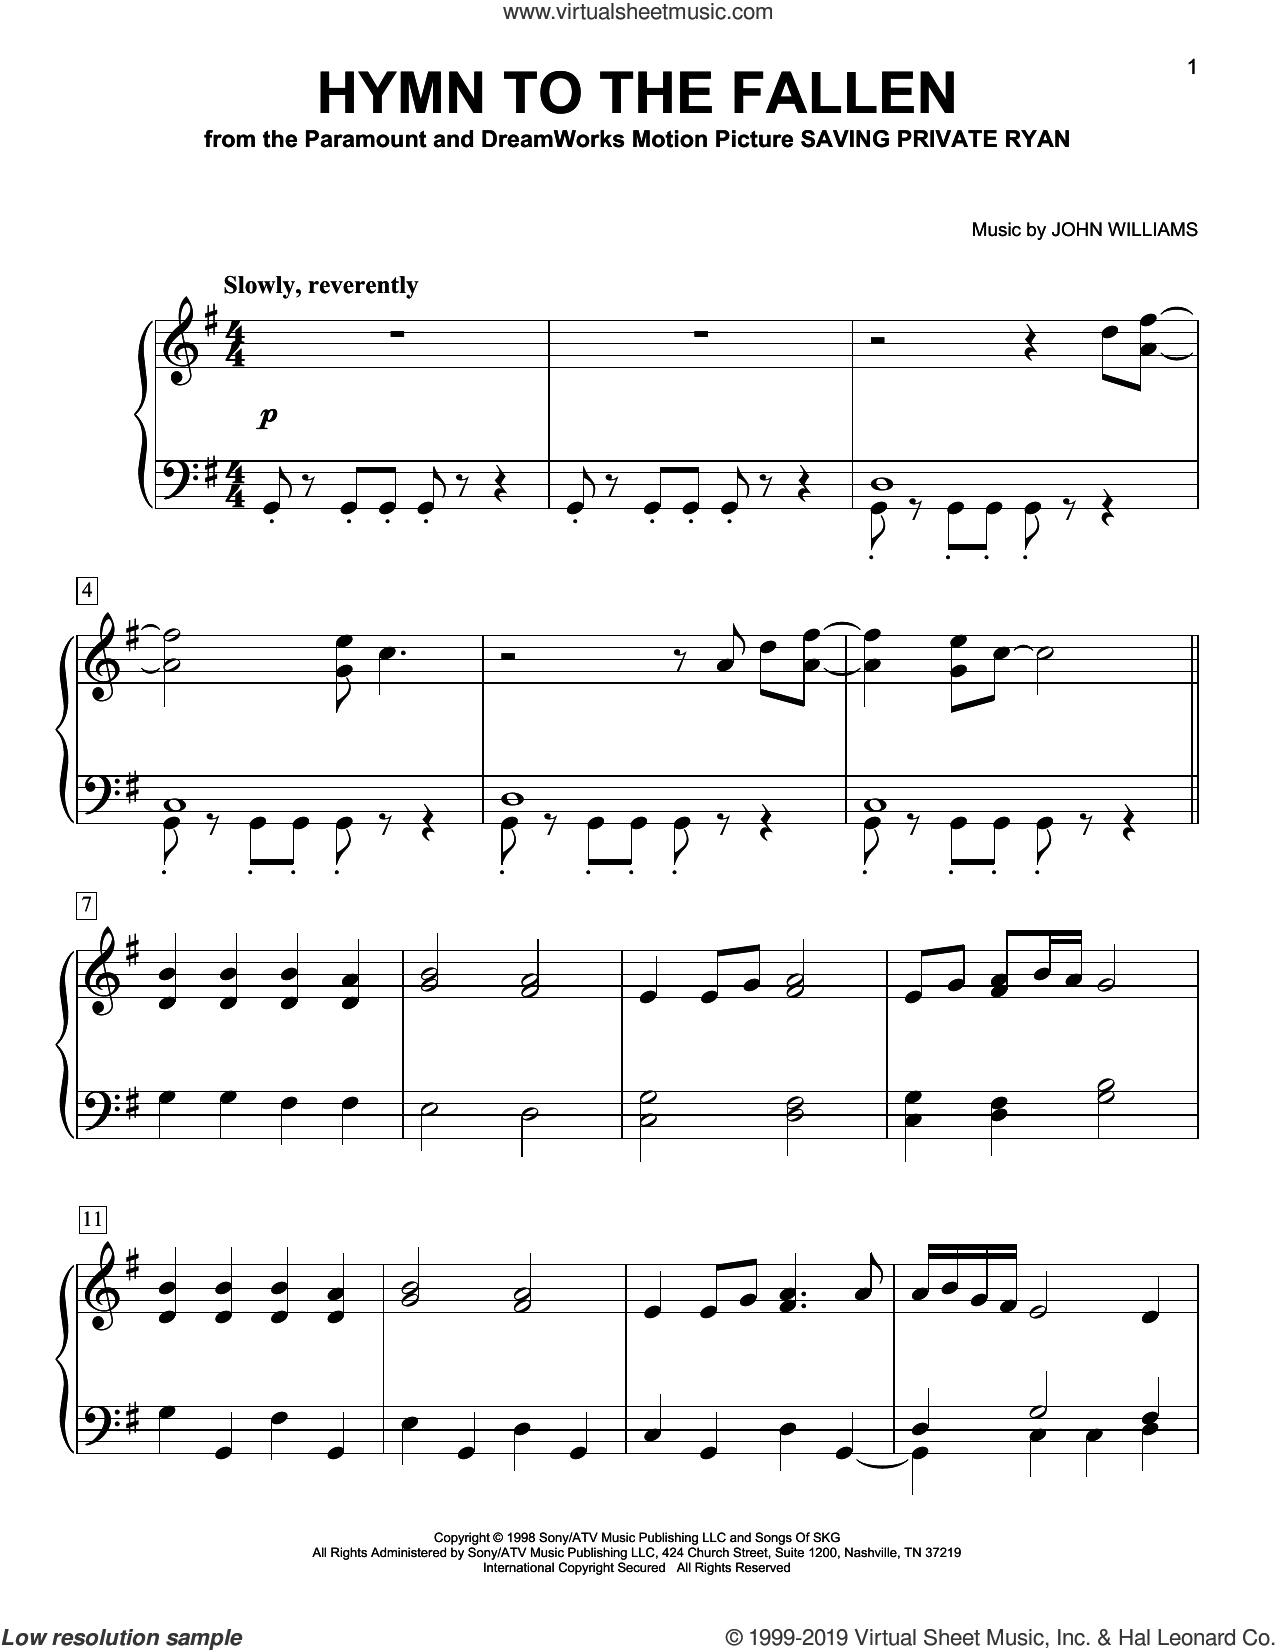 Hymn To The Fallen (from Saving Private Ryan), (easy) sheet music for piano solo by John Williams, easy skill level